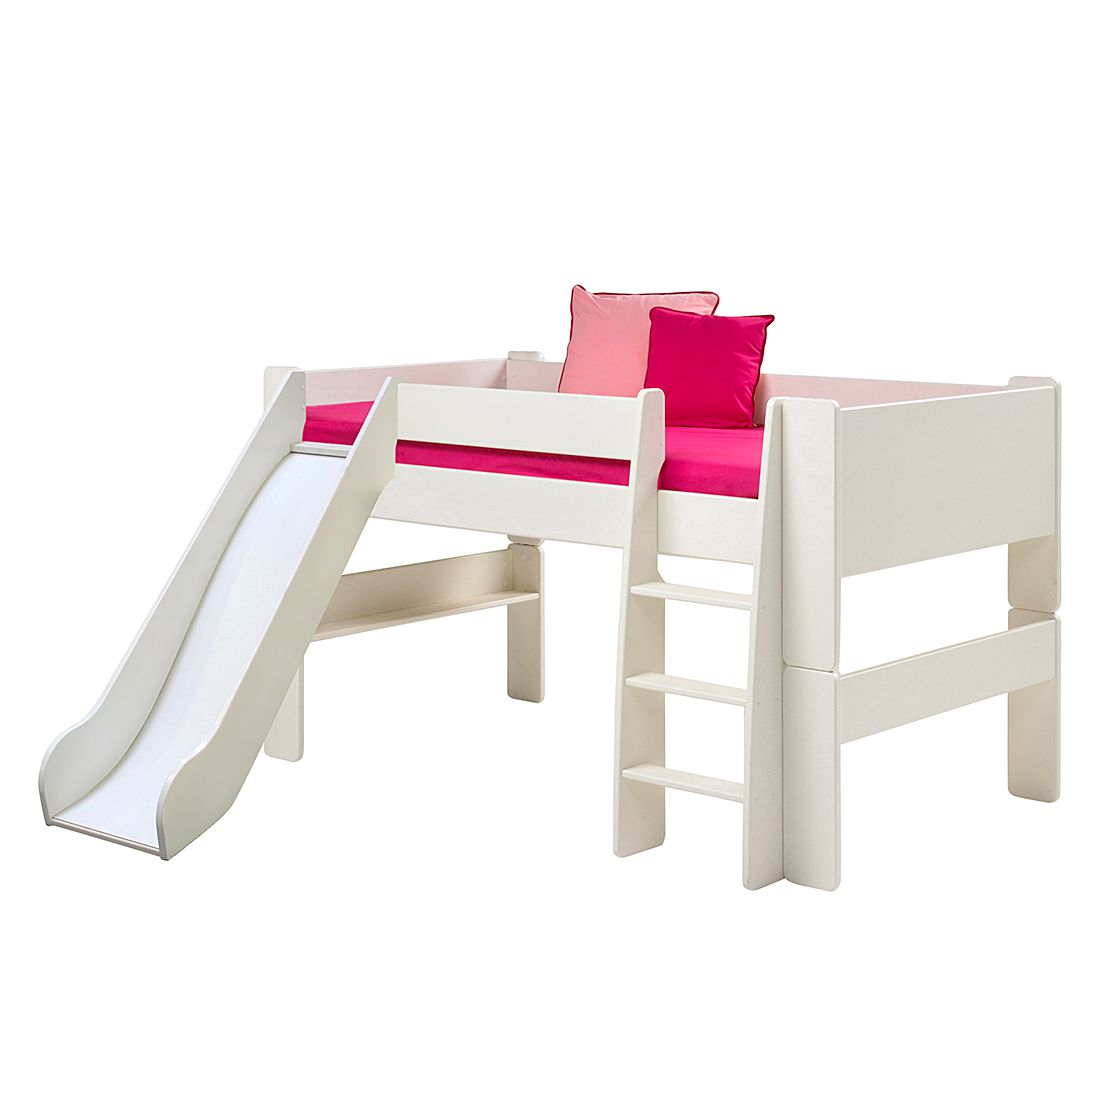 Lit mezzanine Steens for Kids (avec toboggan) - Blanc, Steens